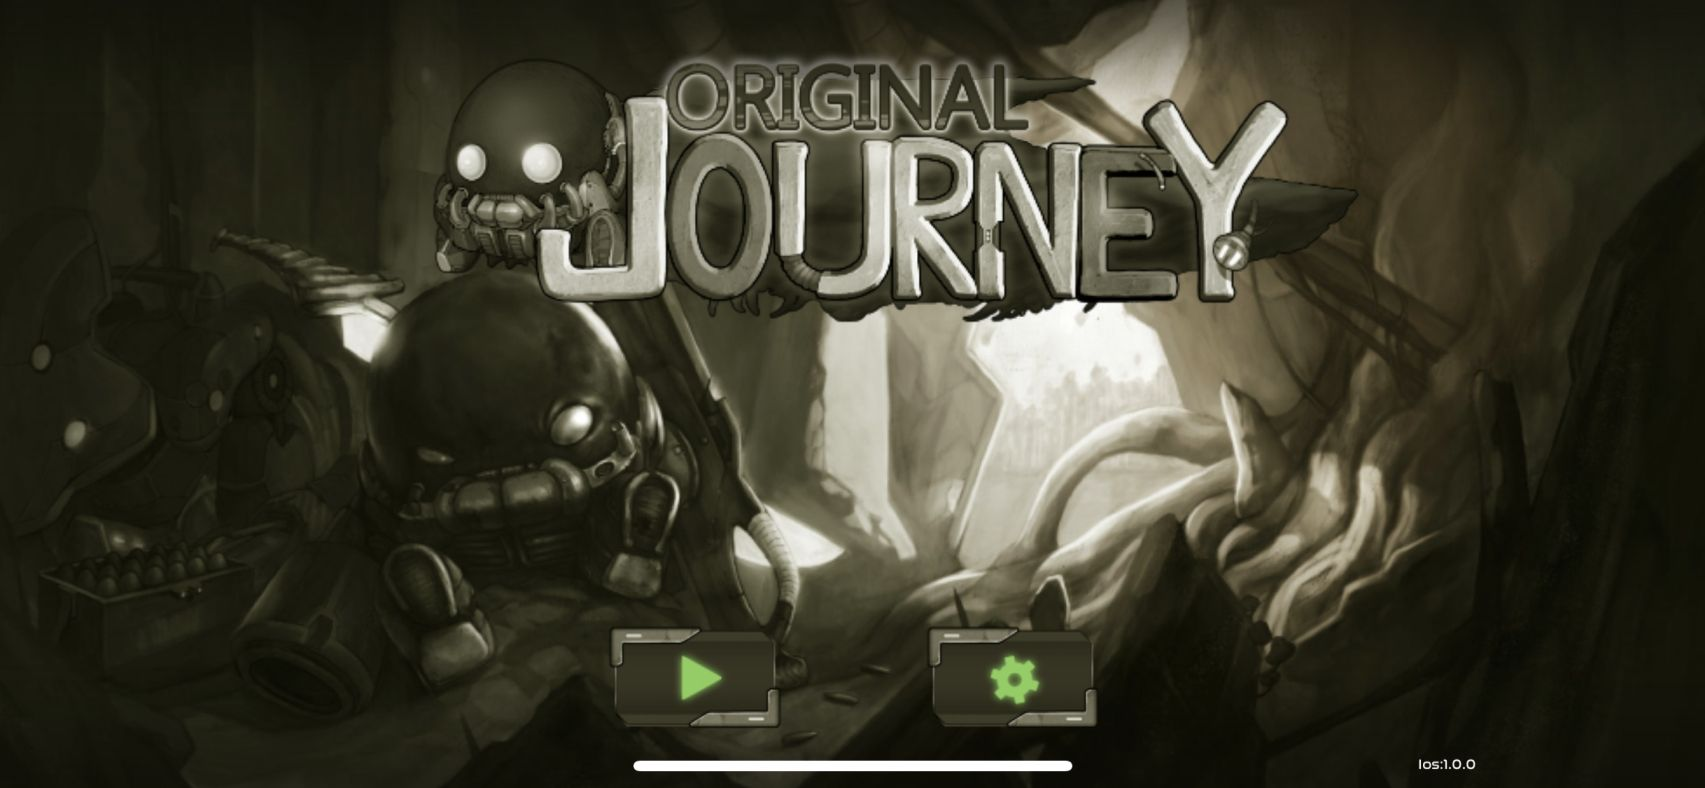 Original Journey (copie d'écran 1 sur Android)